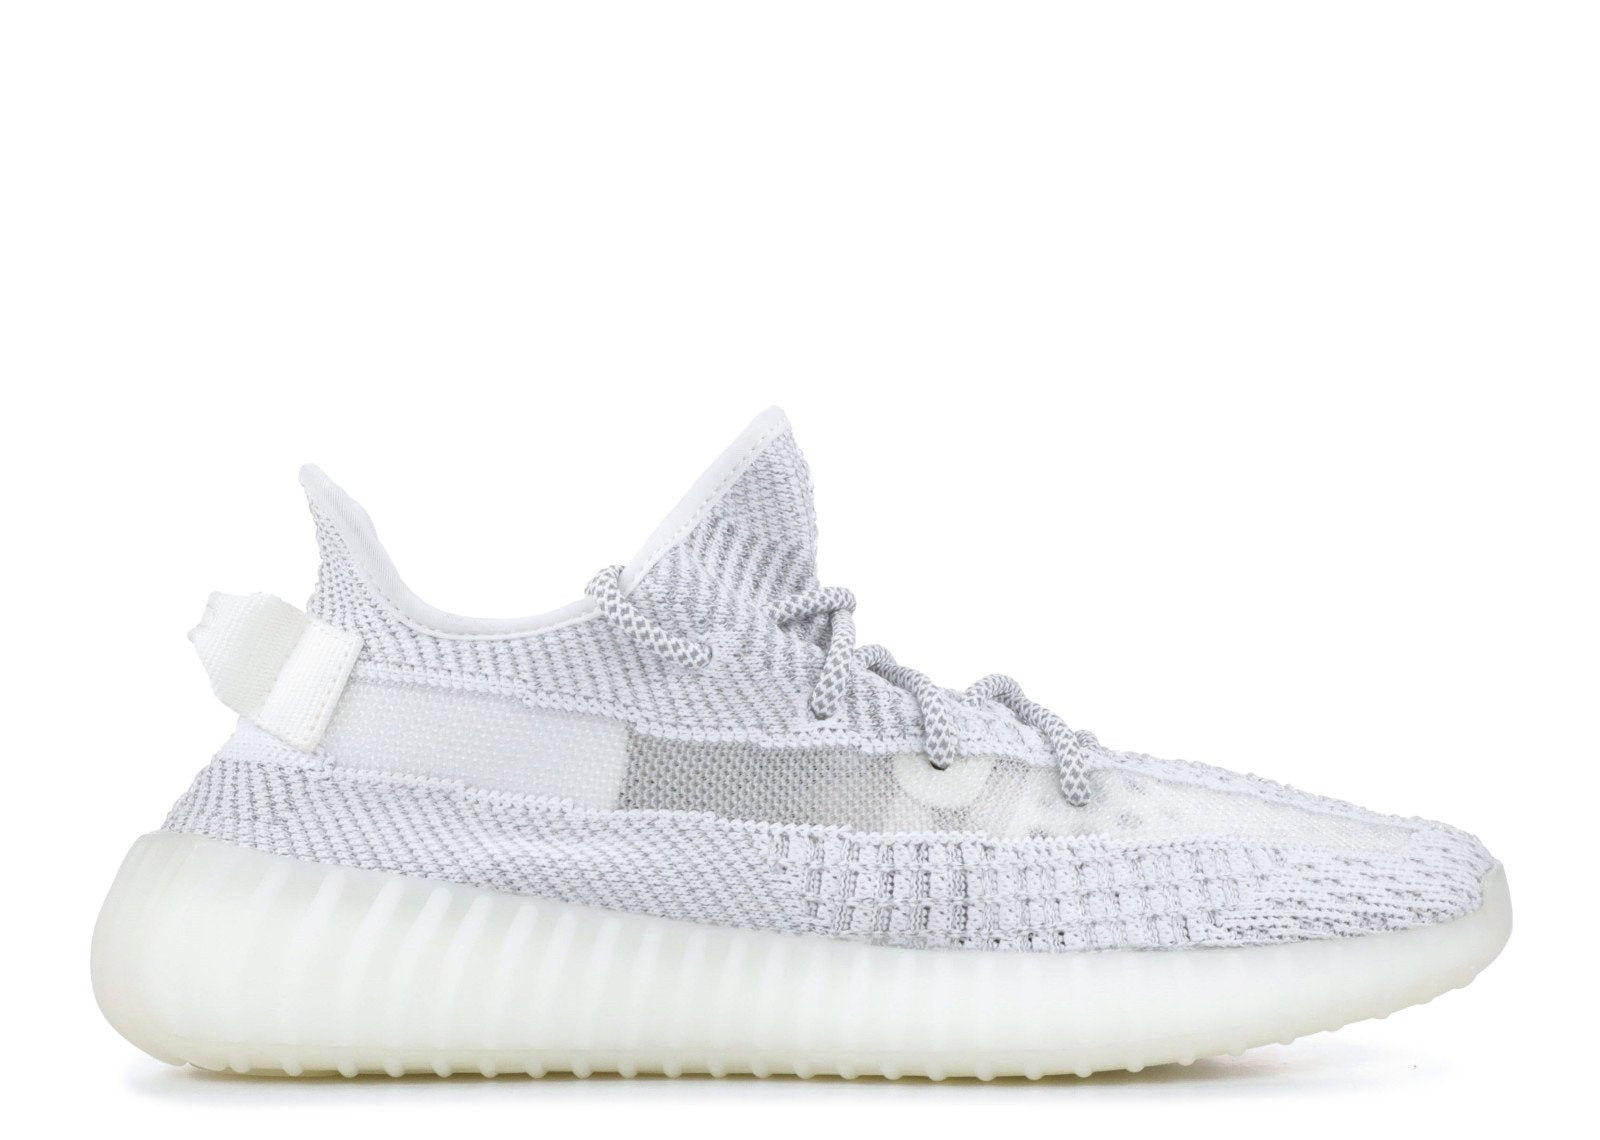 Adidas Yeezy Boost 350 V2 'Static Reflective'